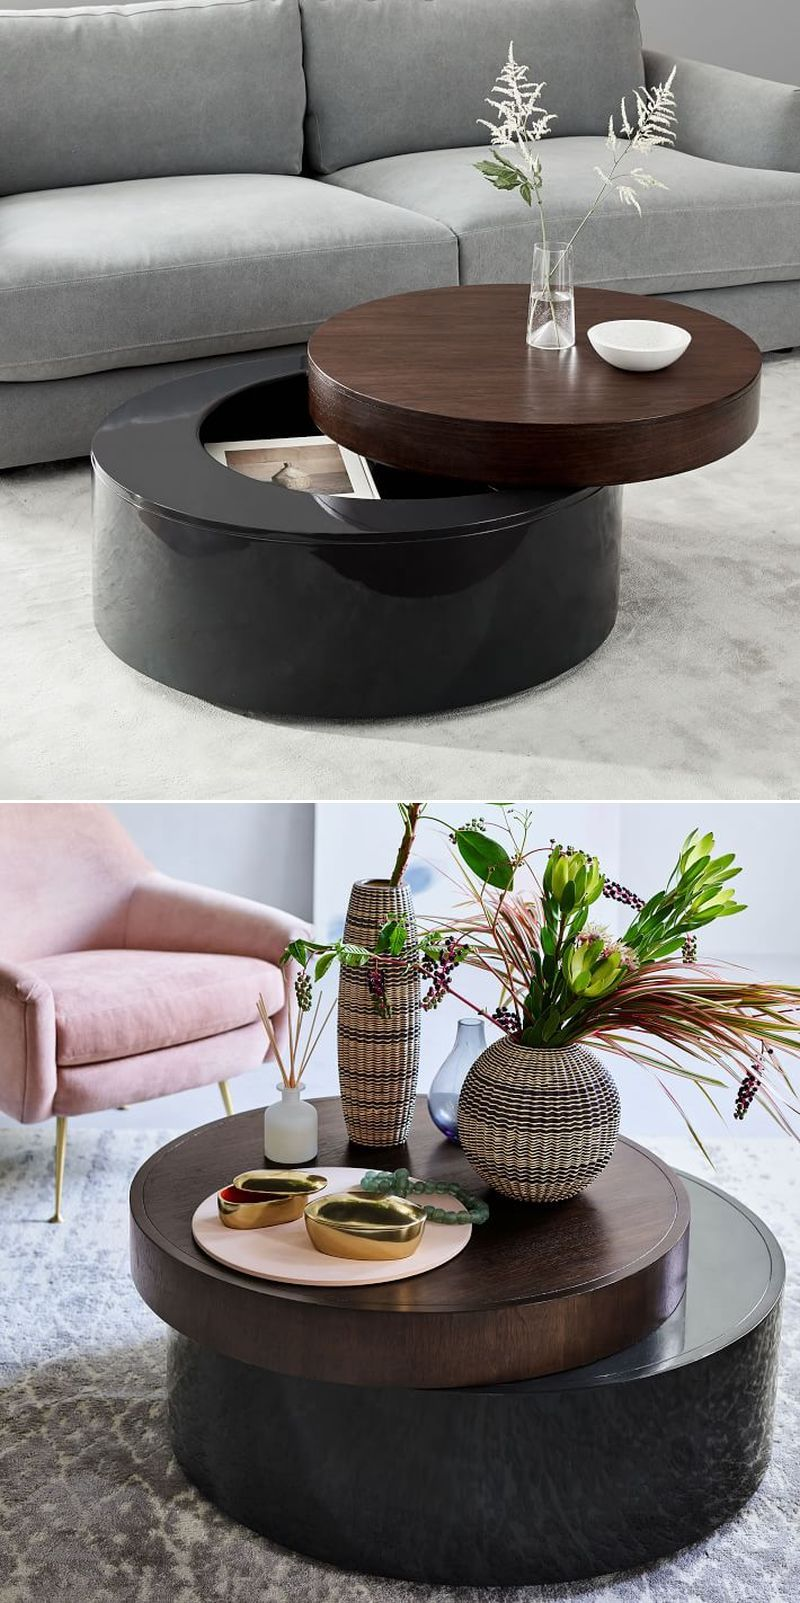 20 Best Coffee Tables With Storage Space To Buy Online In 2021 Coffee Table Cool Coffee Tables Coffee Table With Storage [ 1603 x 800 Pixel ]